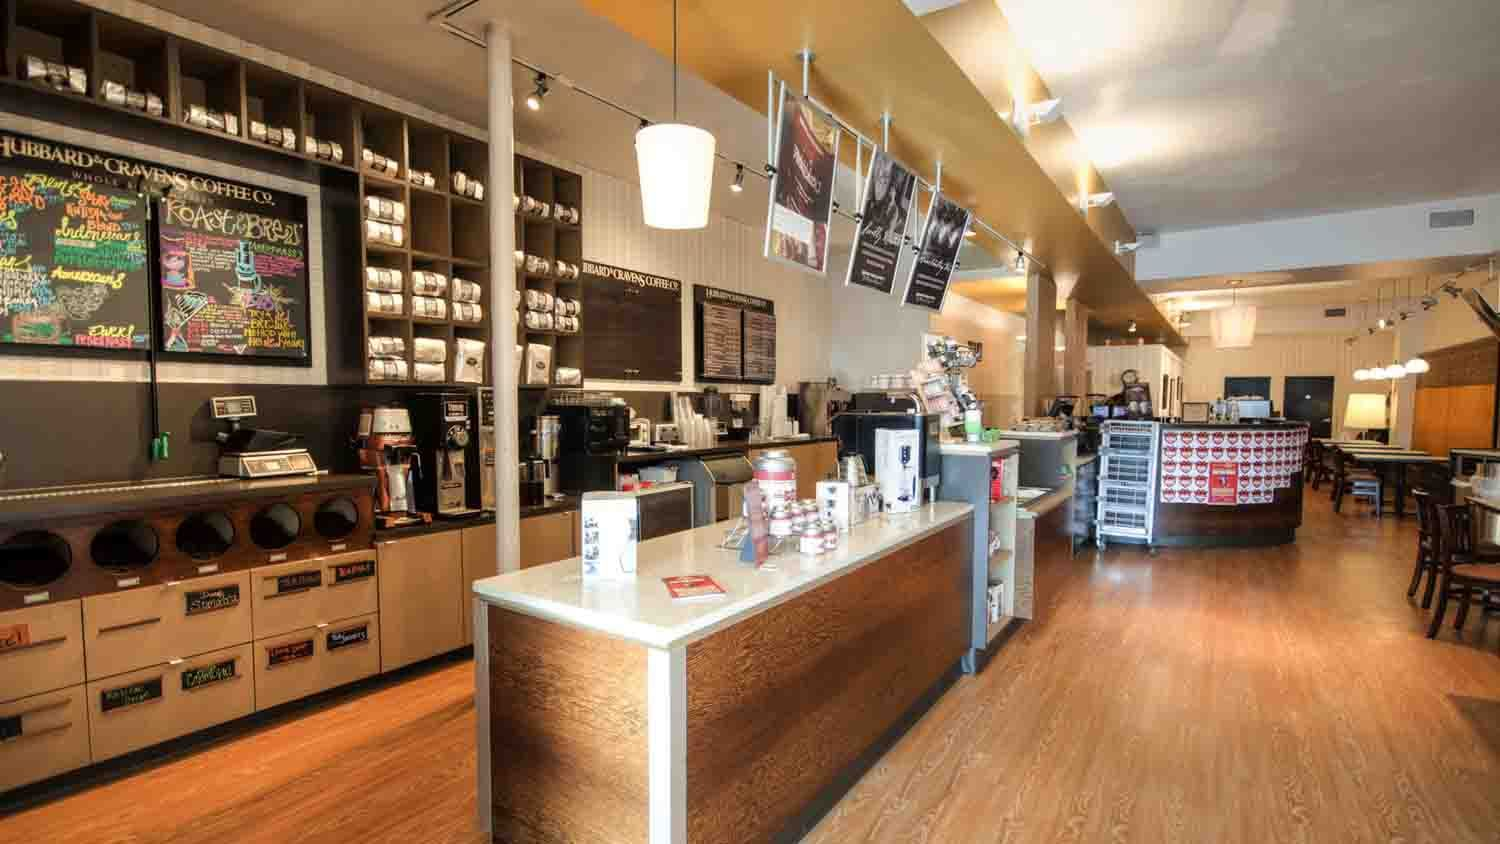 Hubbard Cravens Coffee Co Visit Indy Indiana Cities Coffee Shop Great Coffee